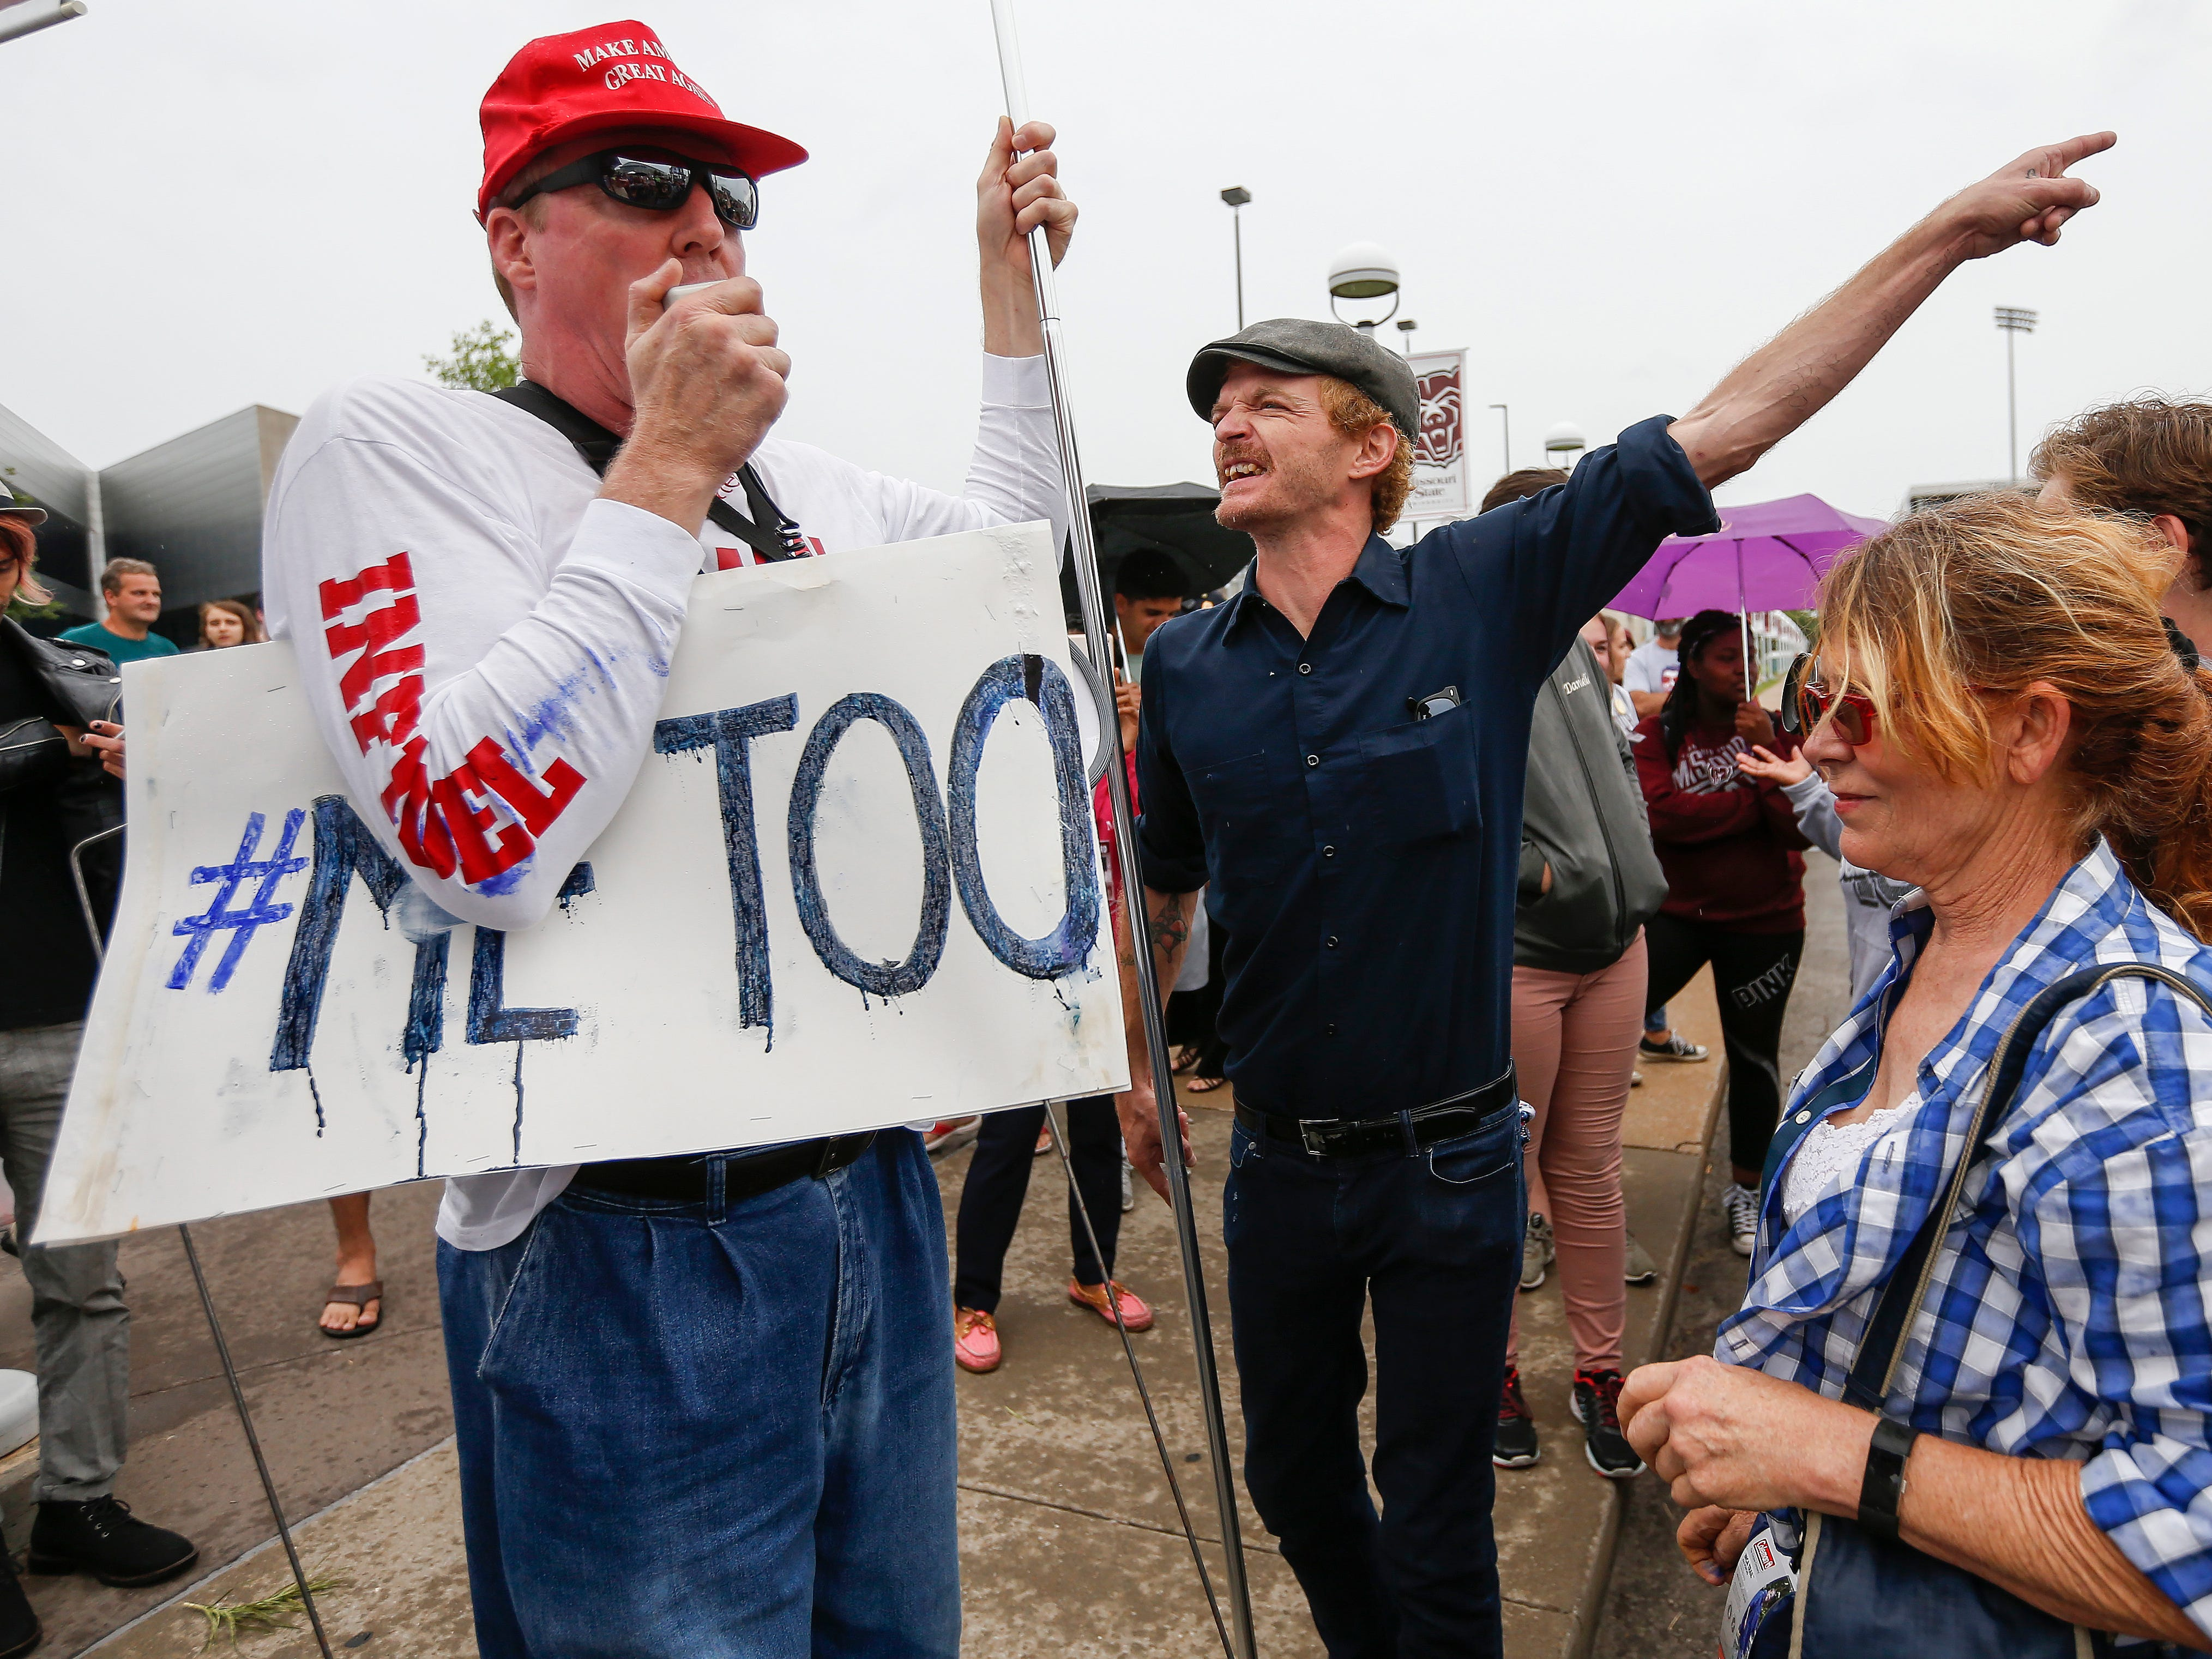 Protesters confront a vocal Trump supporter outside of JQH Arena on the campus of Missouri State University where President Donald Trump was speaking on Friday, Sep. 21, 2018.